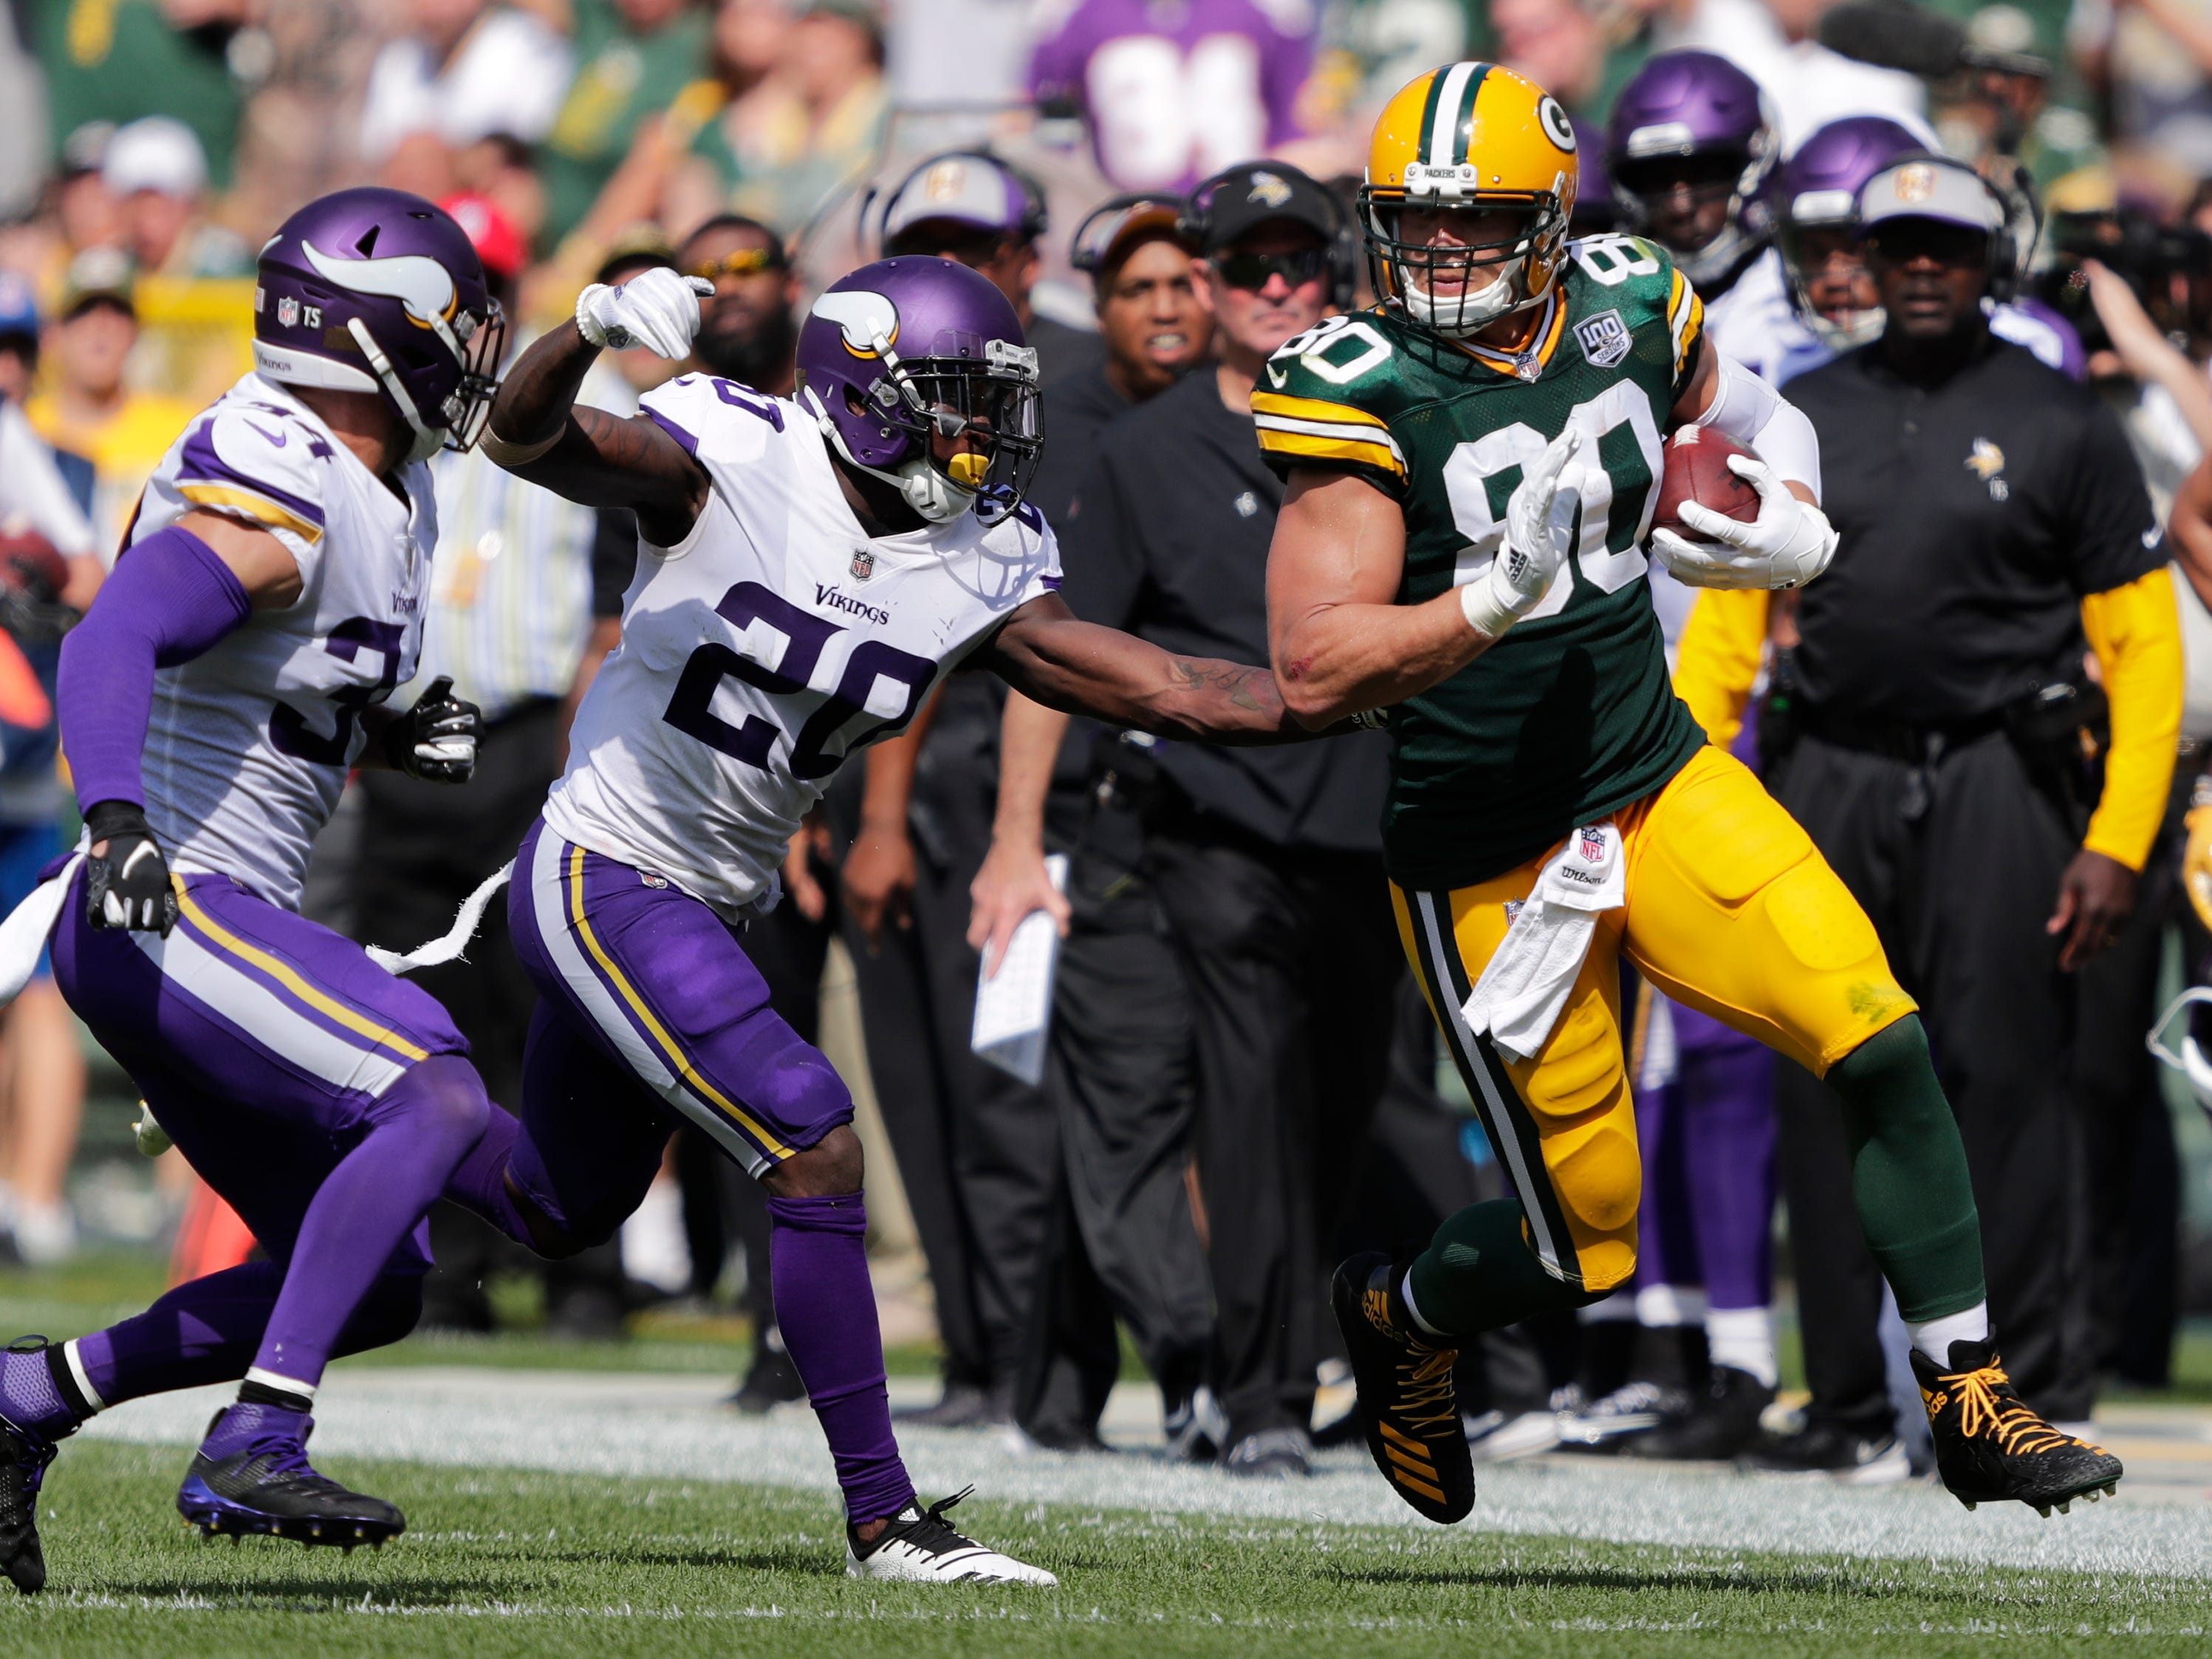 Green Bay Packers tight end Jimmy Graham (80) breaks away on a long reception against Minnesota Vikings defensive back Andrew Sendejo (34) and cornerback Mackensie Alexander (20) in the third quarter during their football game Sunday, Sept. 16, 2018, at Lambeau Field in Green Bay, Wis.